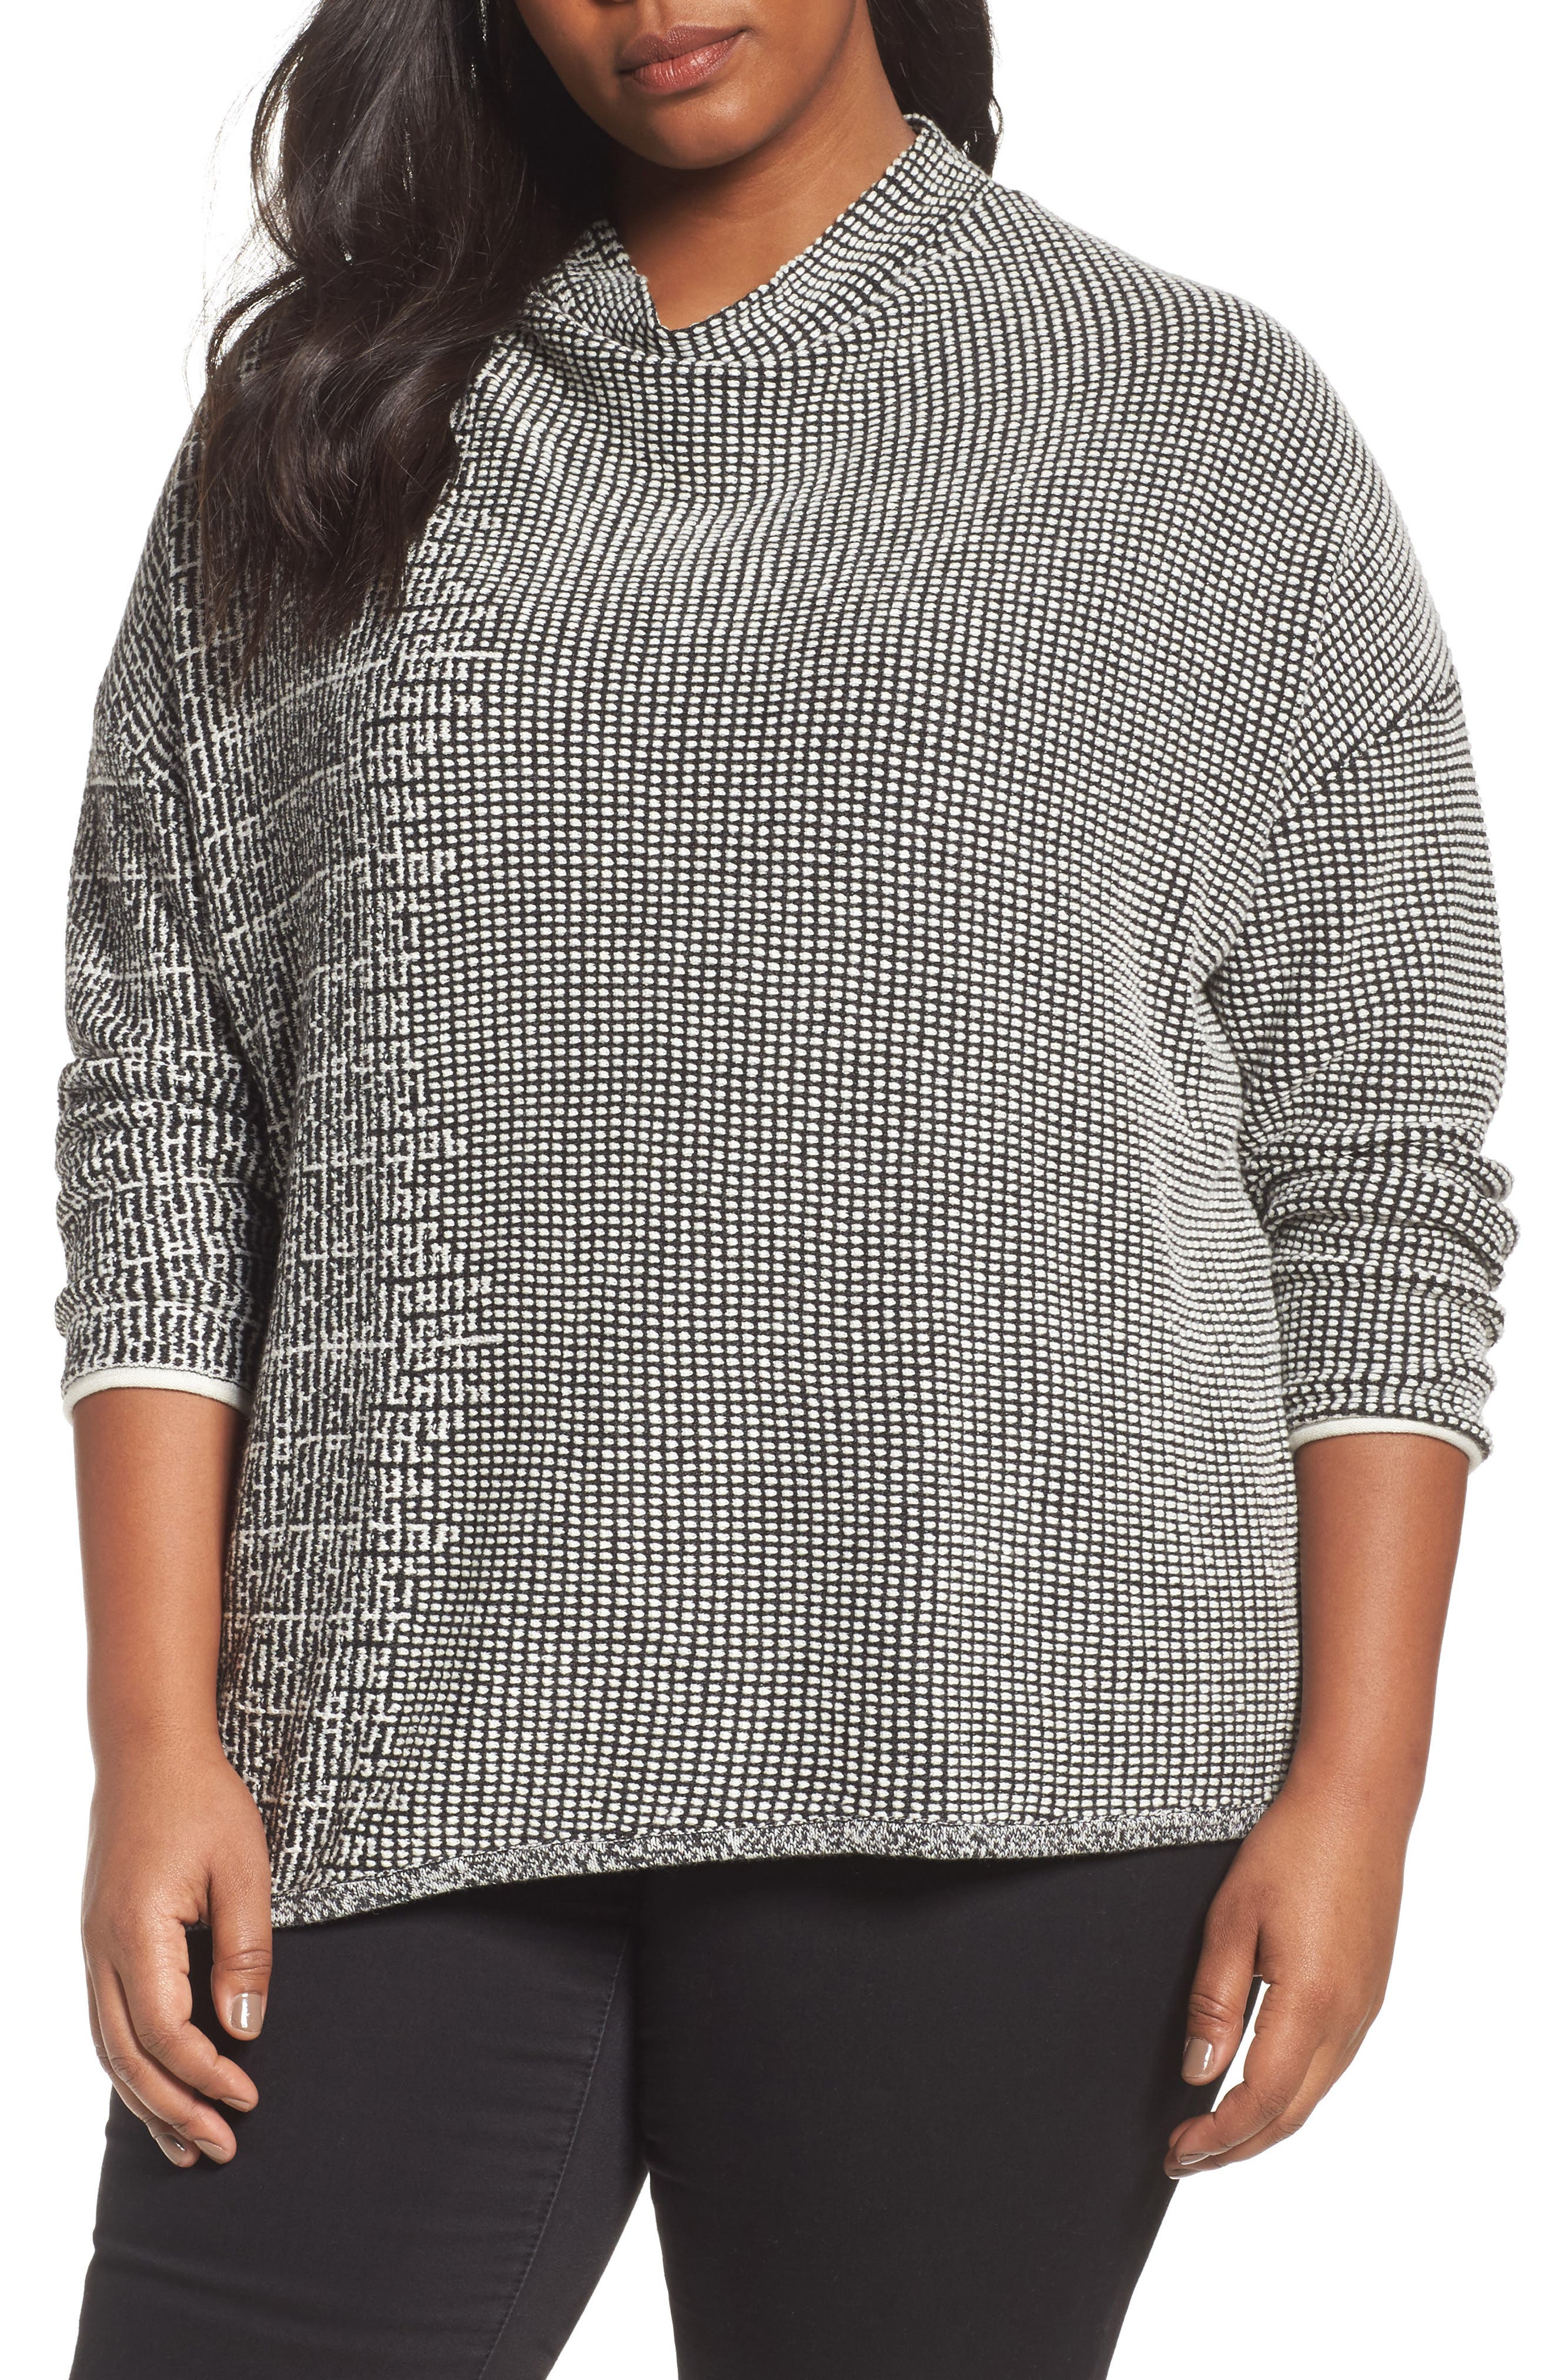 Alternate Image 1 Selected - NIC+ZOE Frosted Fall Sweater (Plus Size)